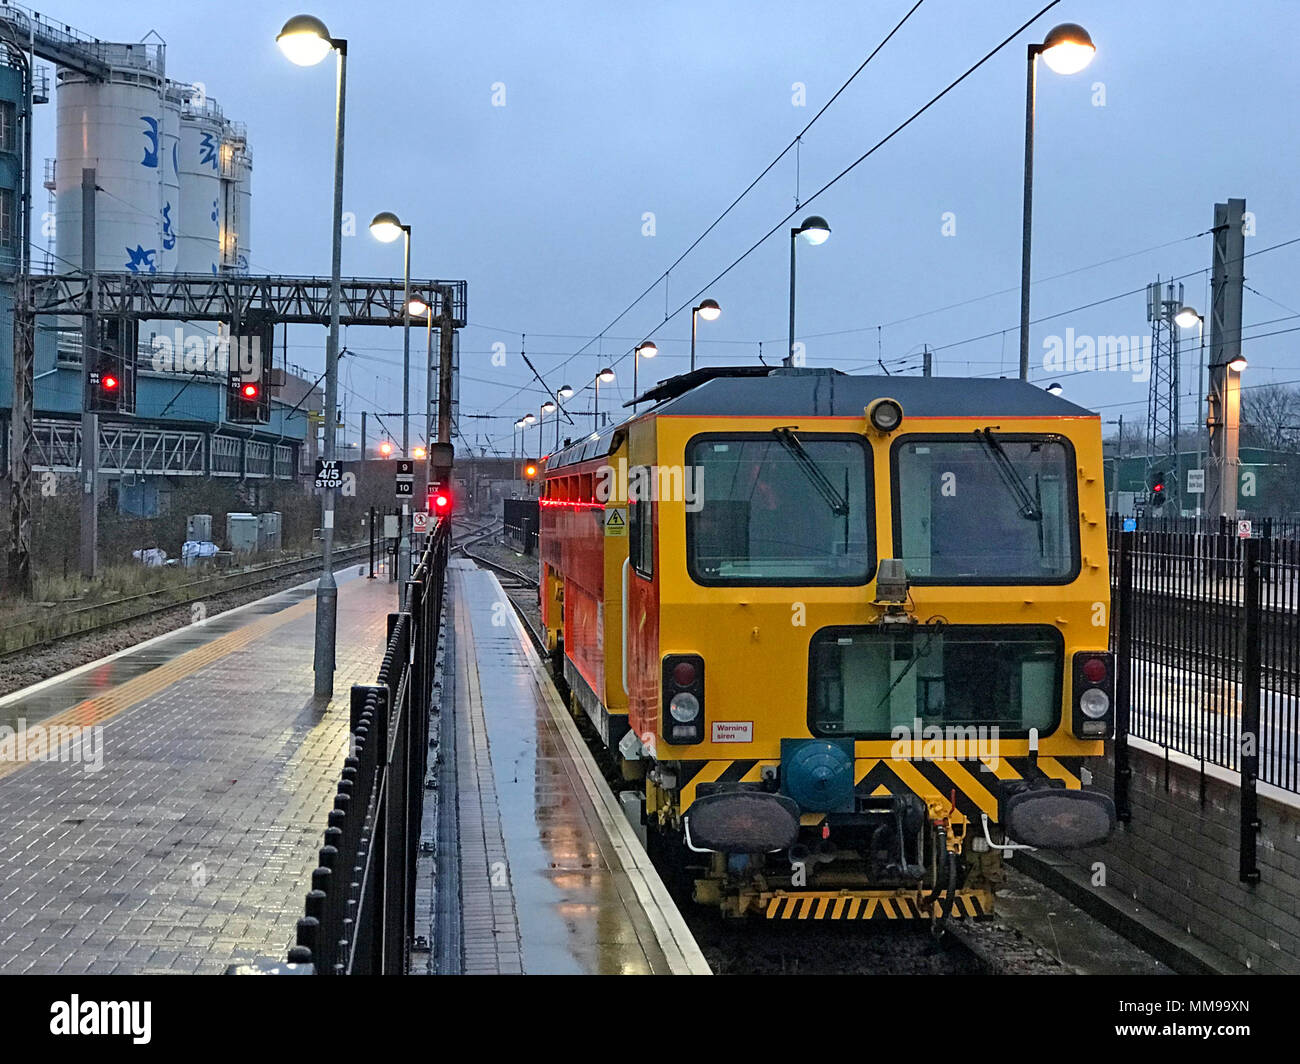 GoTonysmith,@HotpixUK,Warrington Bank Quay station at dusk,Cheshire,England,UK,winter,at platform,in station,yellow,tamper,Railway,Network Rail,Networkrail,track maintenance,engine,vehicle,at,night,nighttime,night time,BR,British Rail,Railtrack,Network Rail Maintenance Engine,DMU,Track Repair,Red Signal,MPV,investment programme,GRIP,Governance for Railway Investment Projects,Railway Investment Projects,measuring,Running the railway,infrastructure monitoring train,maintaining and renewing track,necessary maintenance